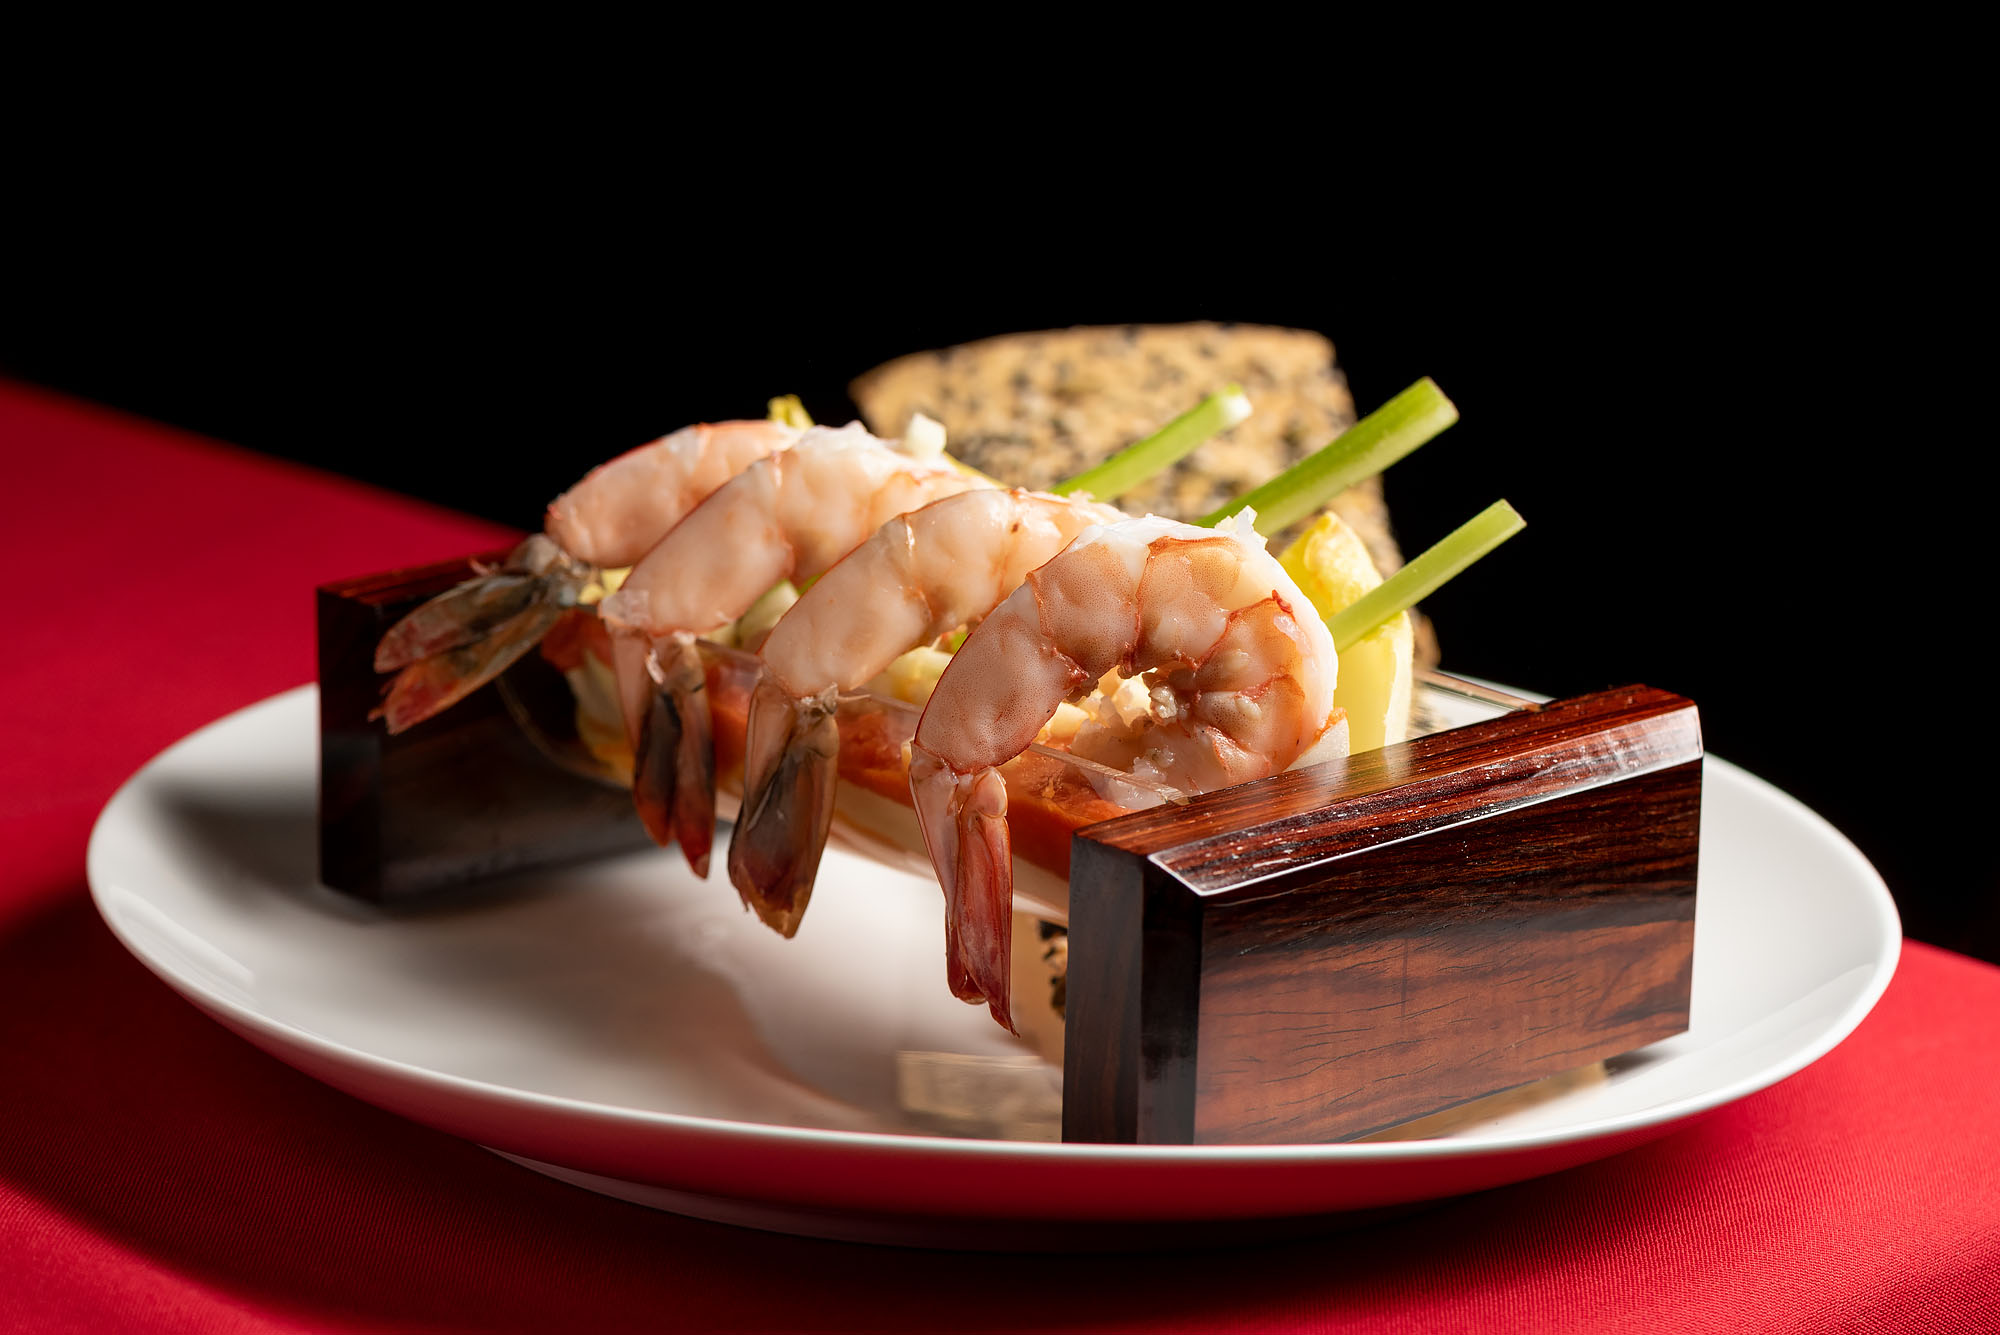 A skewer of shrimp assembled horizontally on a plate with a red tablecloth beneath.